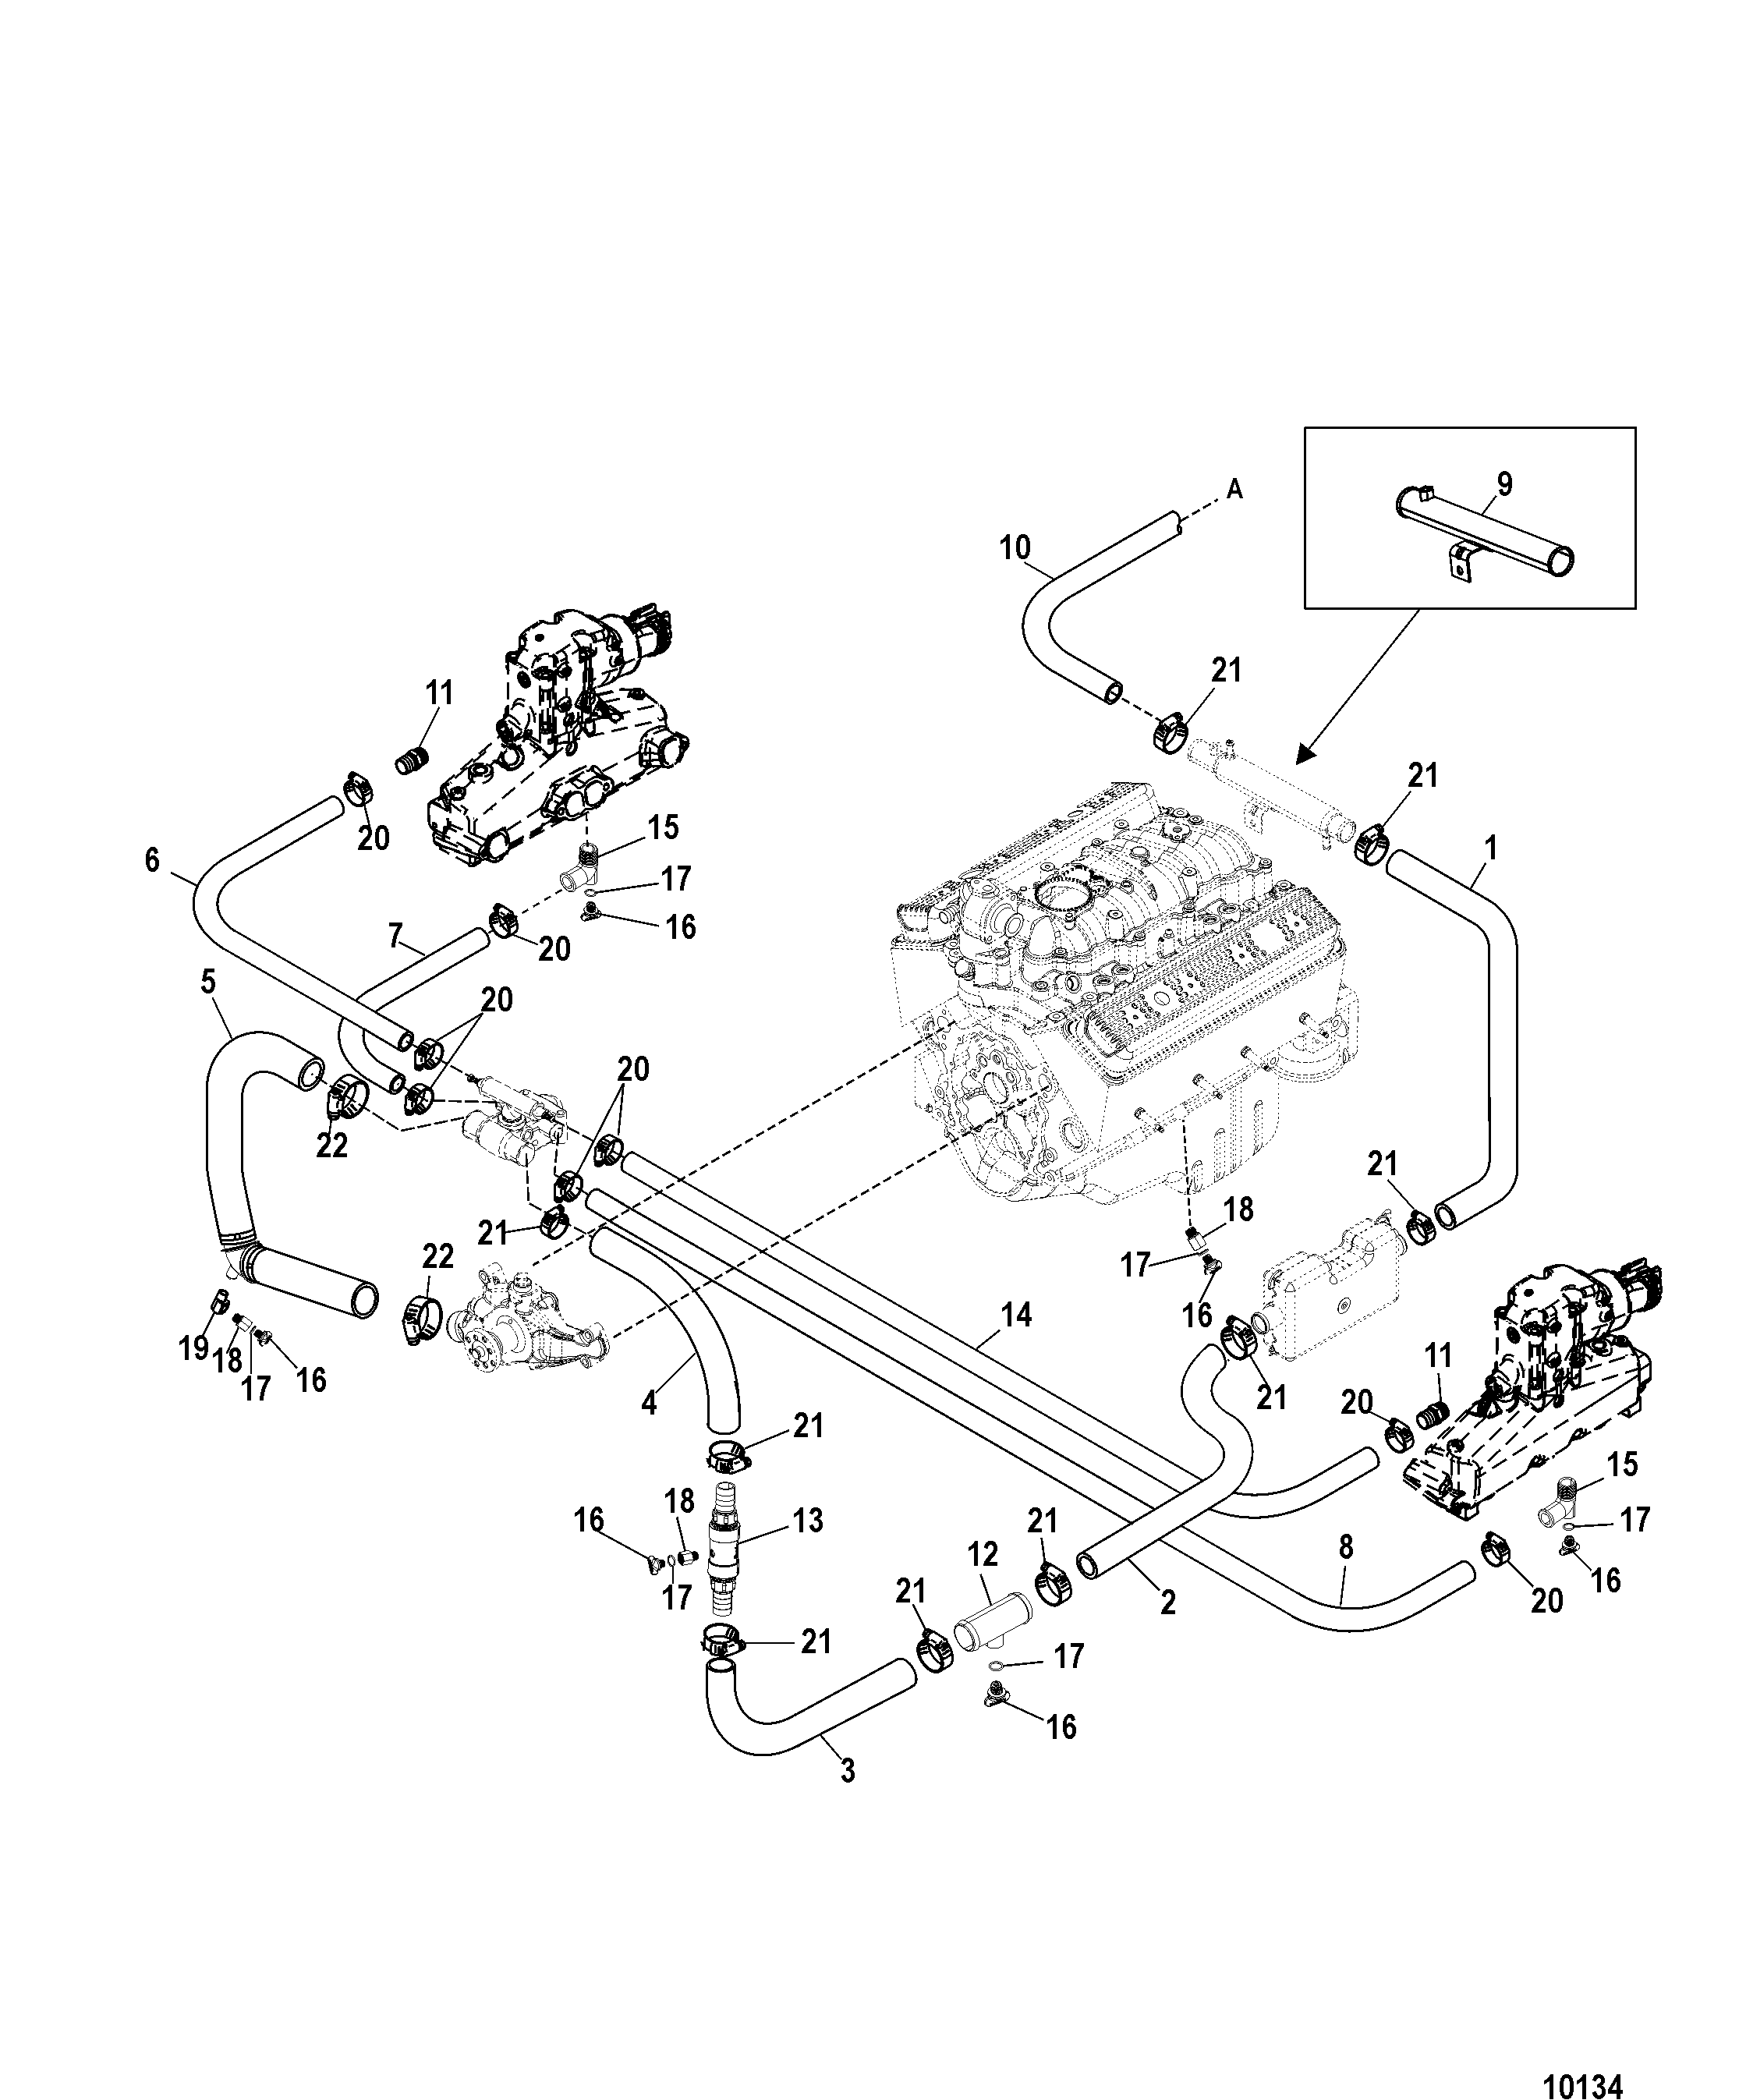 10134 mercruiser 5 0 engine diagram wiring library